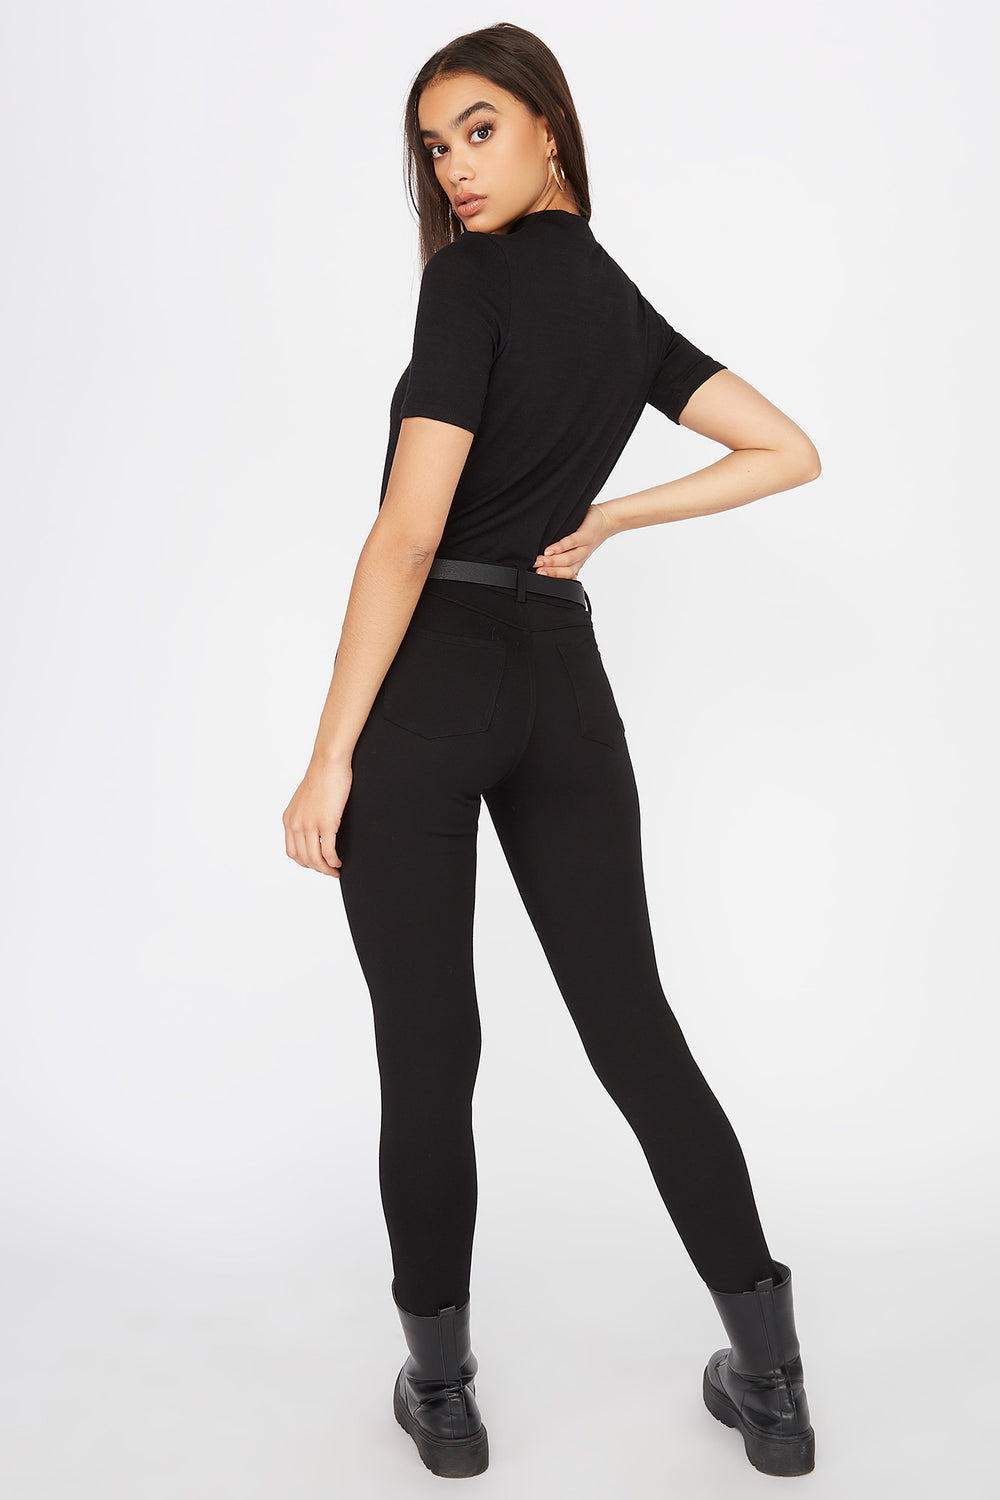 Heather Mock Neck Short Sleeve Black